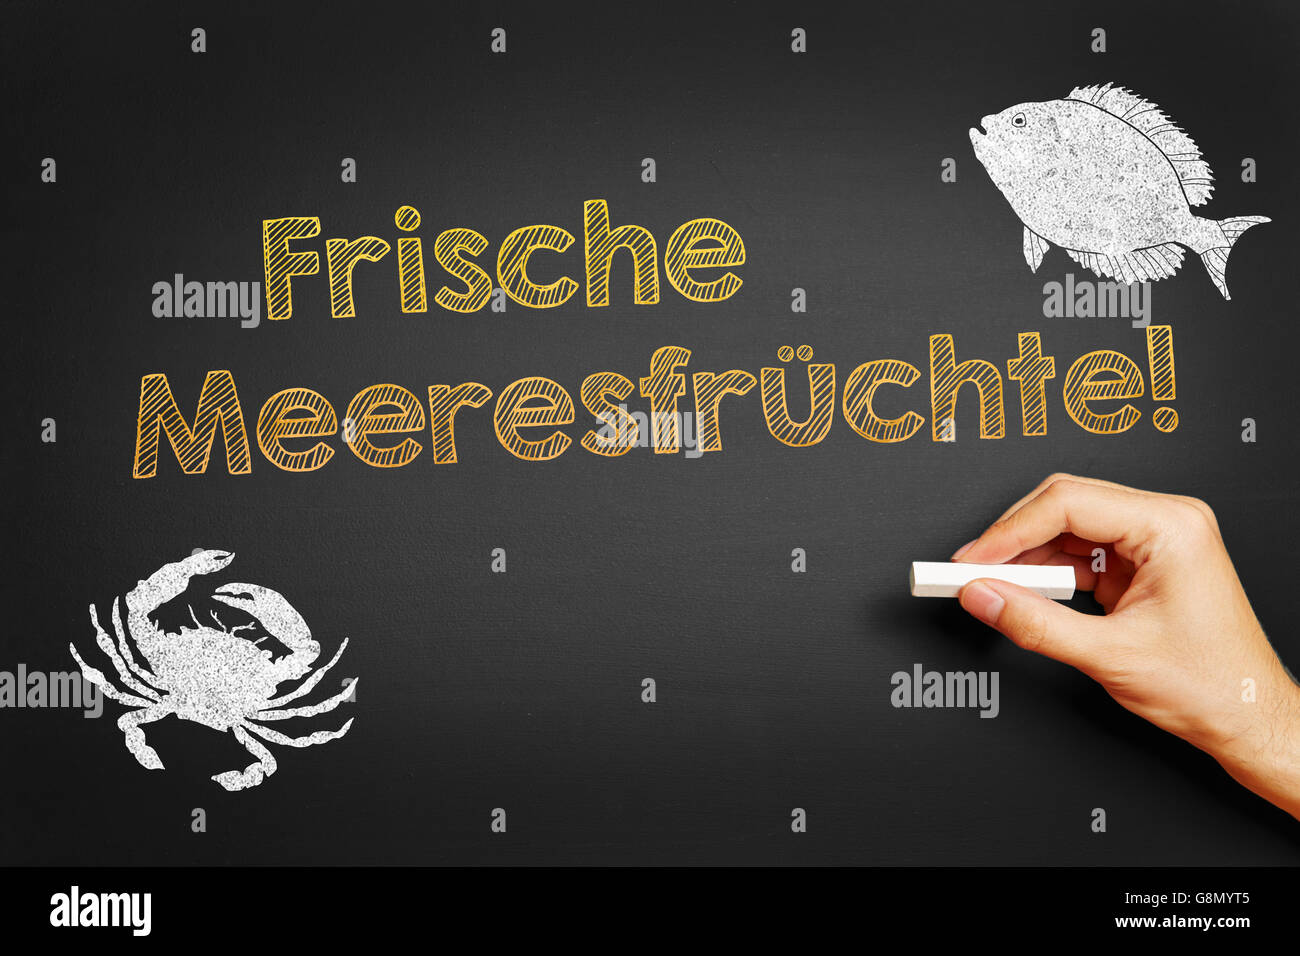 Hand with chalk writing in German 'Frische Meeresfruechte!' (Fresh Sea Food) on a blackboard - Stock Image